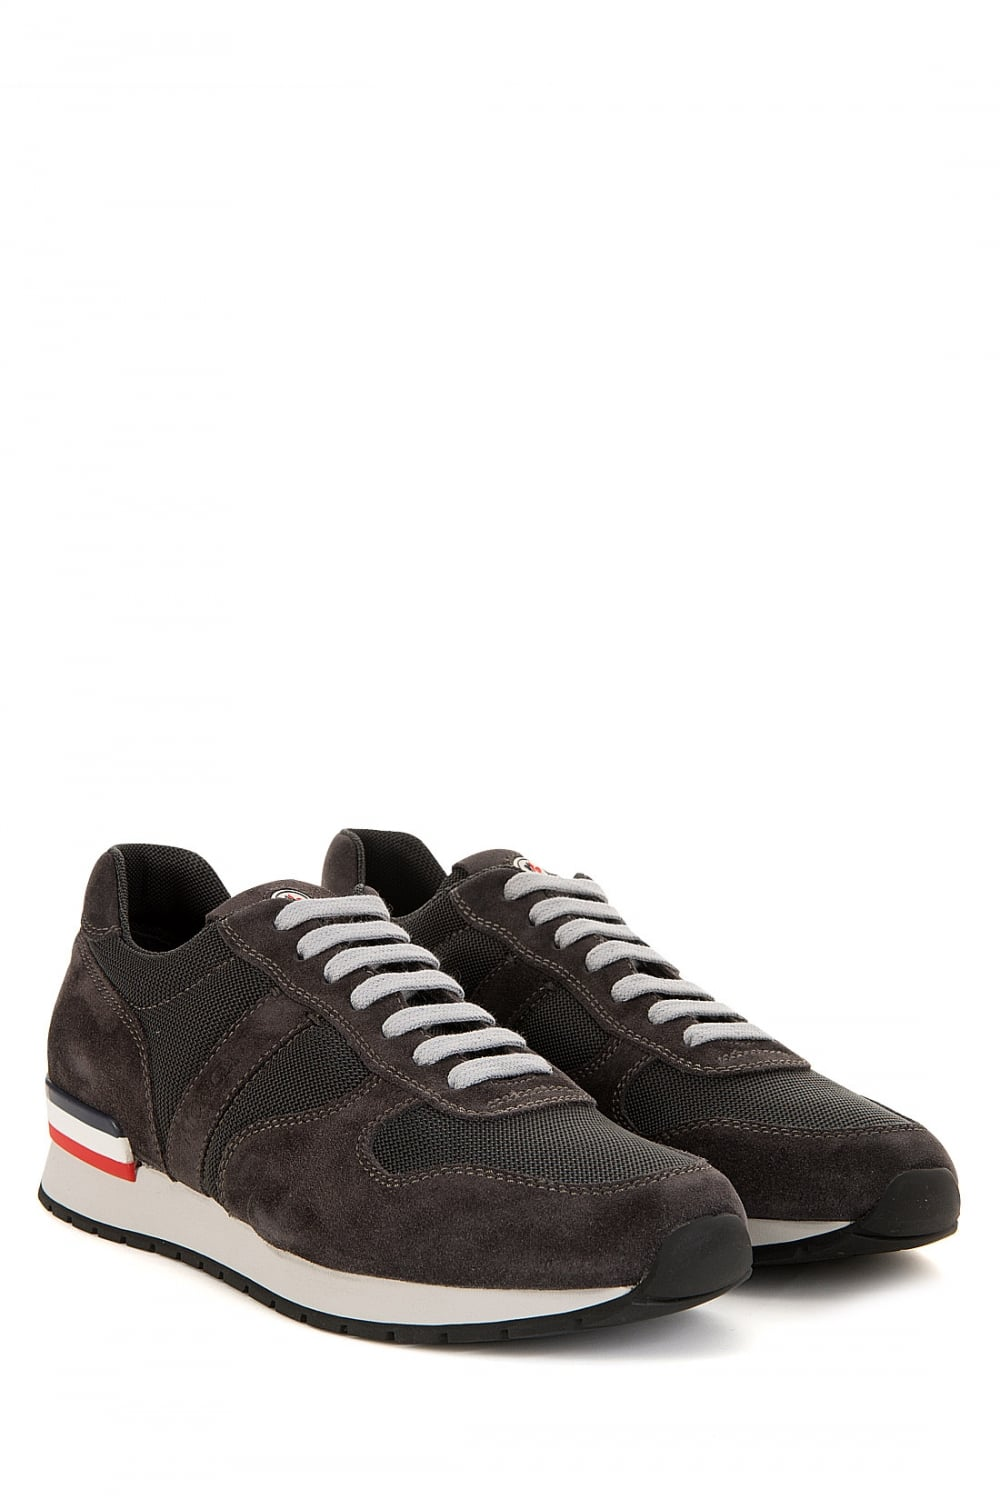 moncler trainers